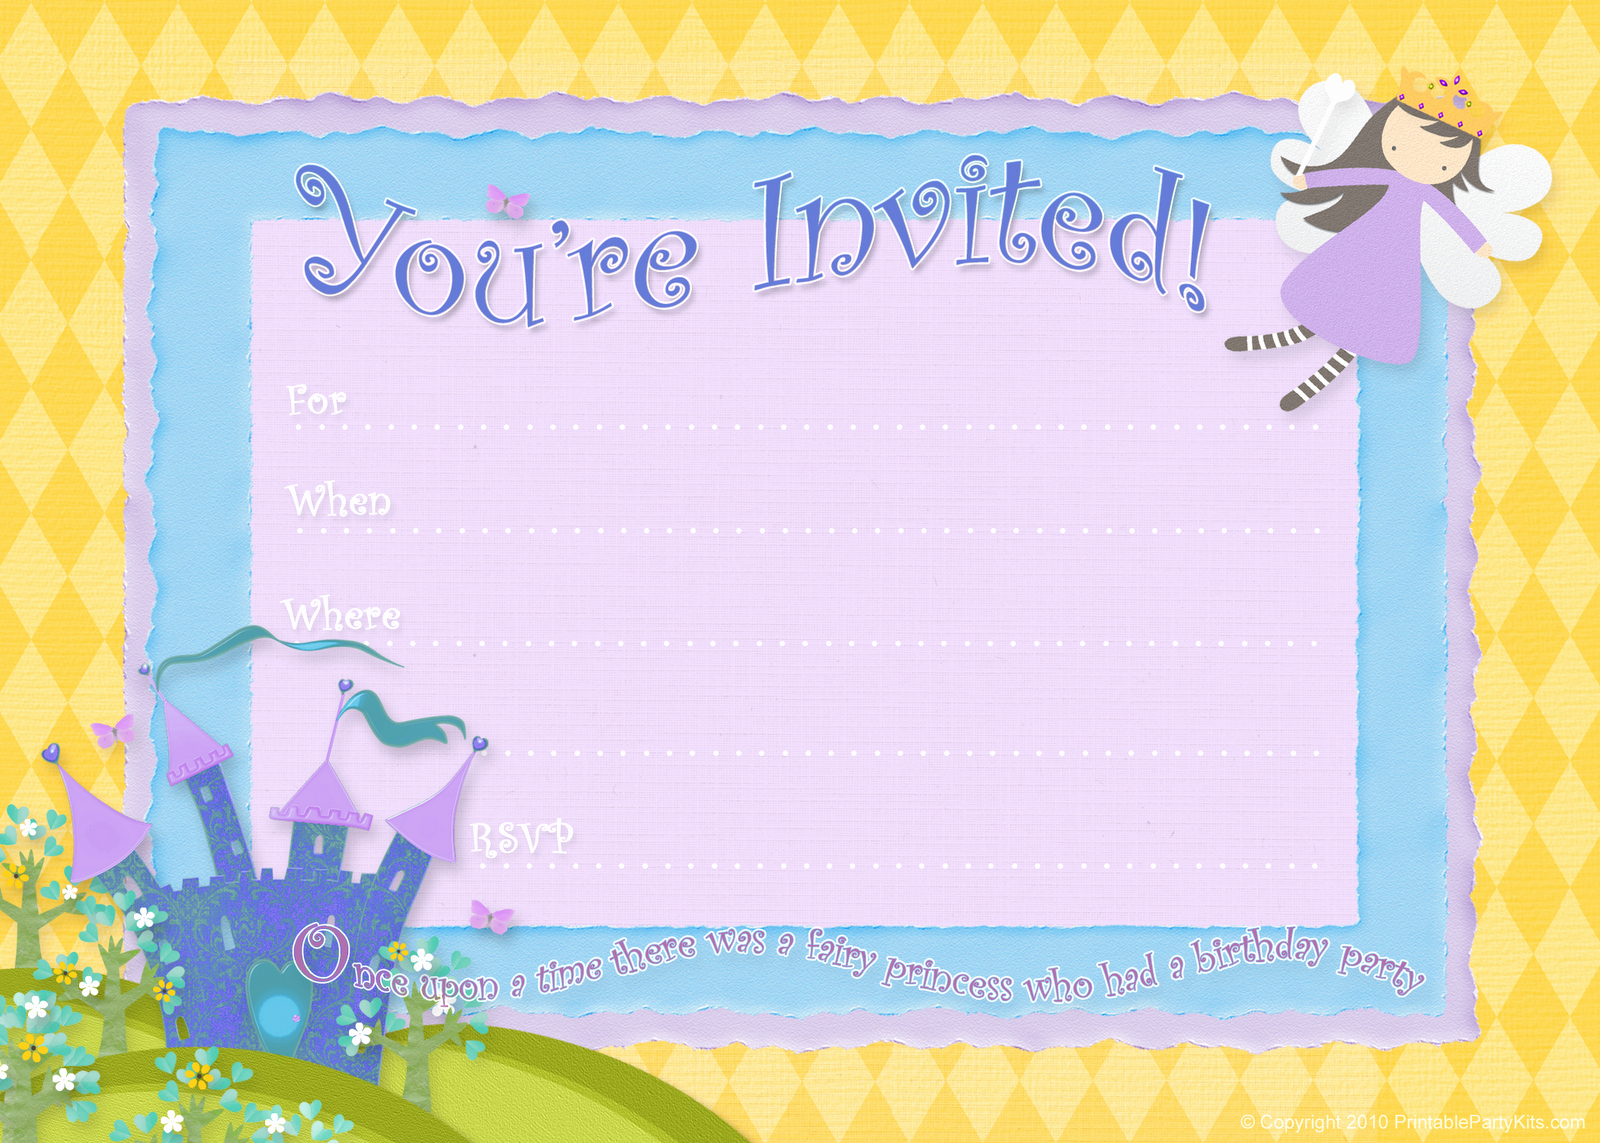 Free Birthday Party Invitation Templates New Free Birthday Party Invitations – Bagvania Free Printable